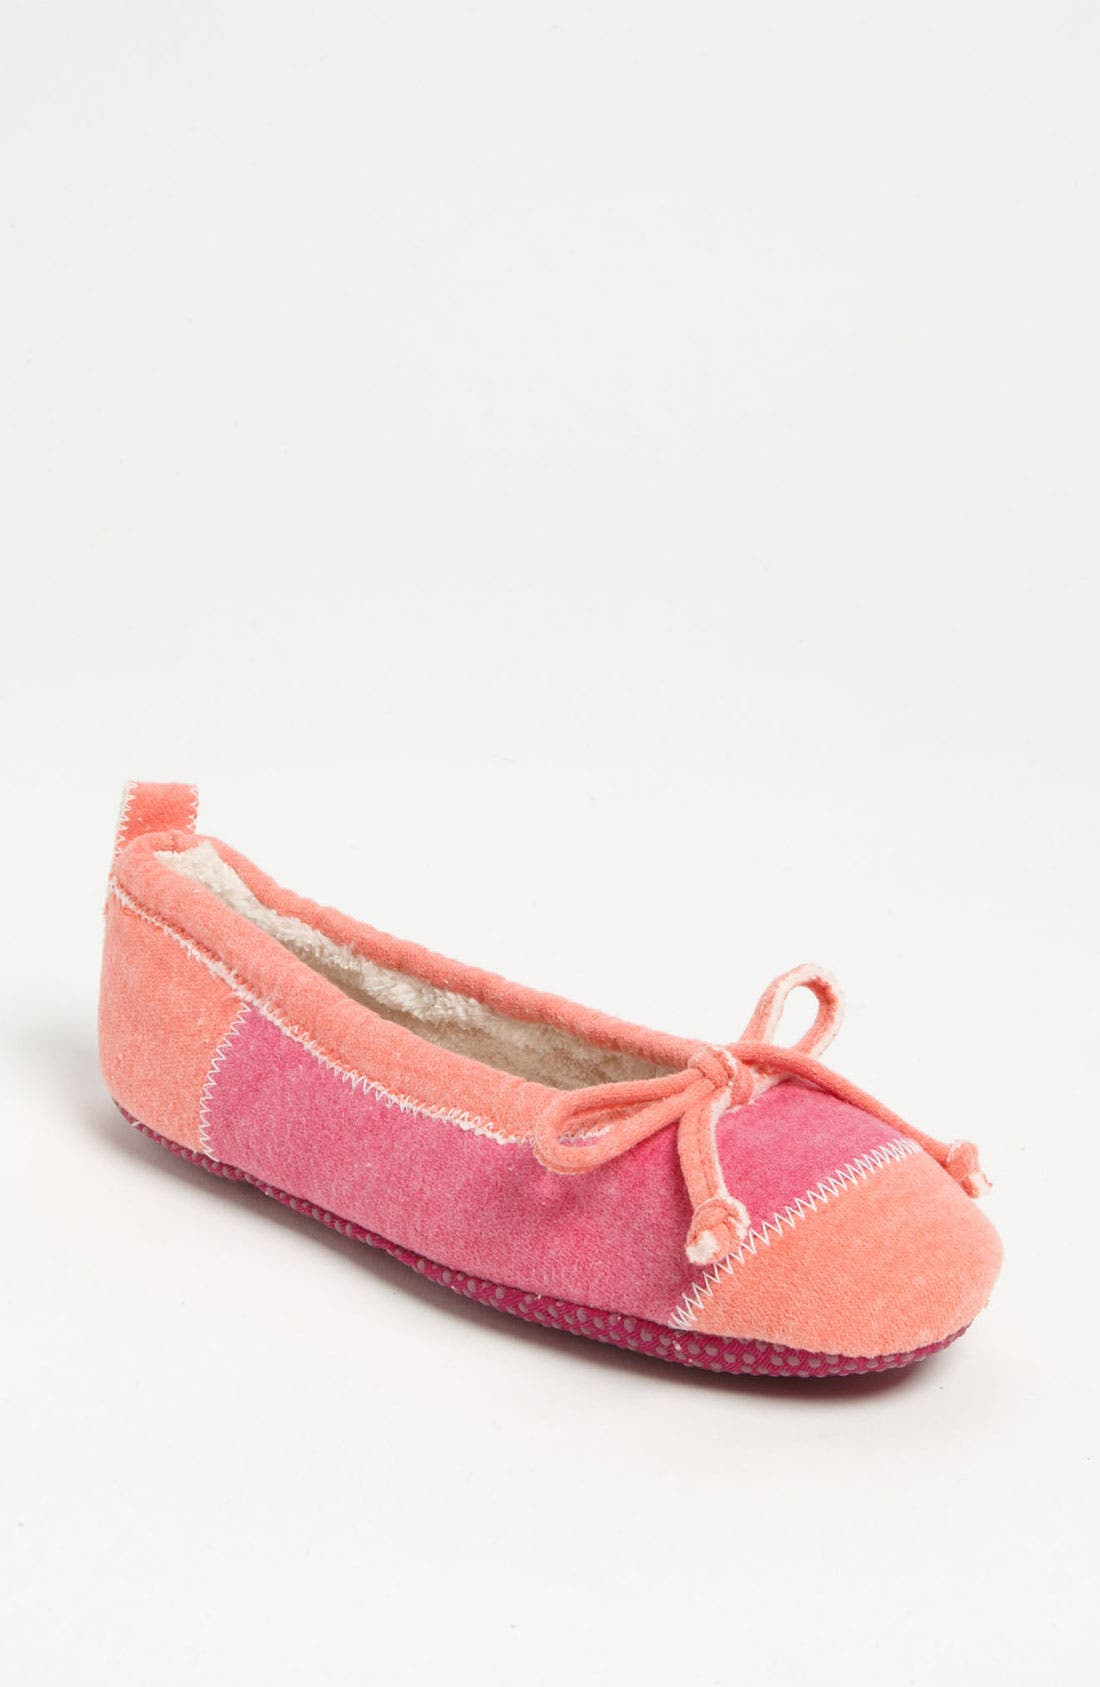 Main Image - Acorn 'Easy Spa' Slipper (Online Only)